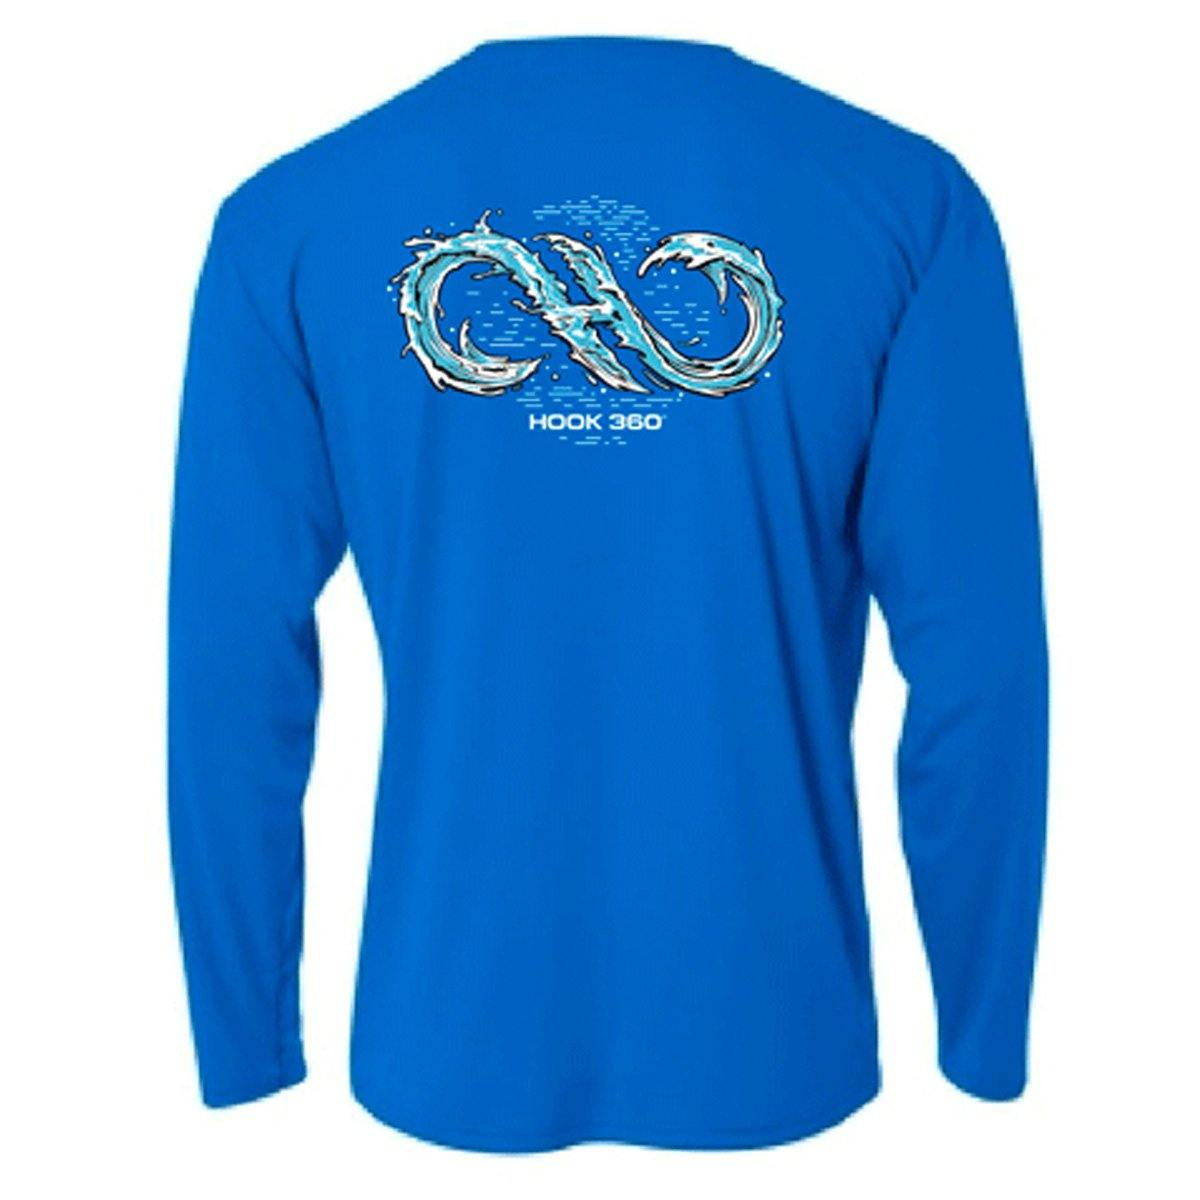 Wave Performance Shirt